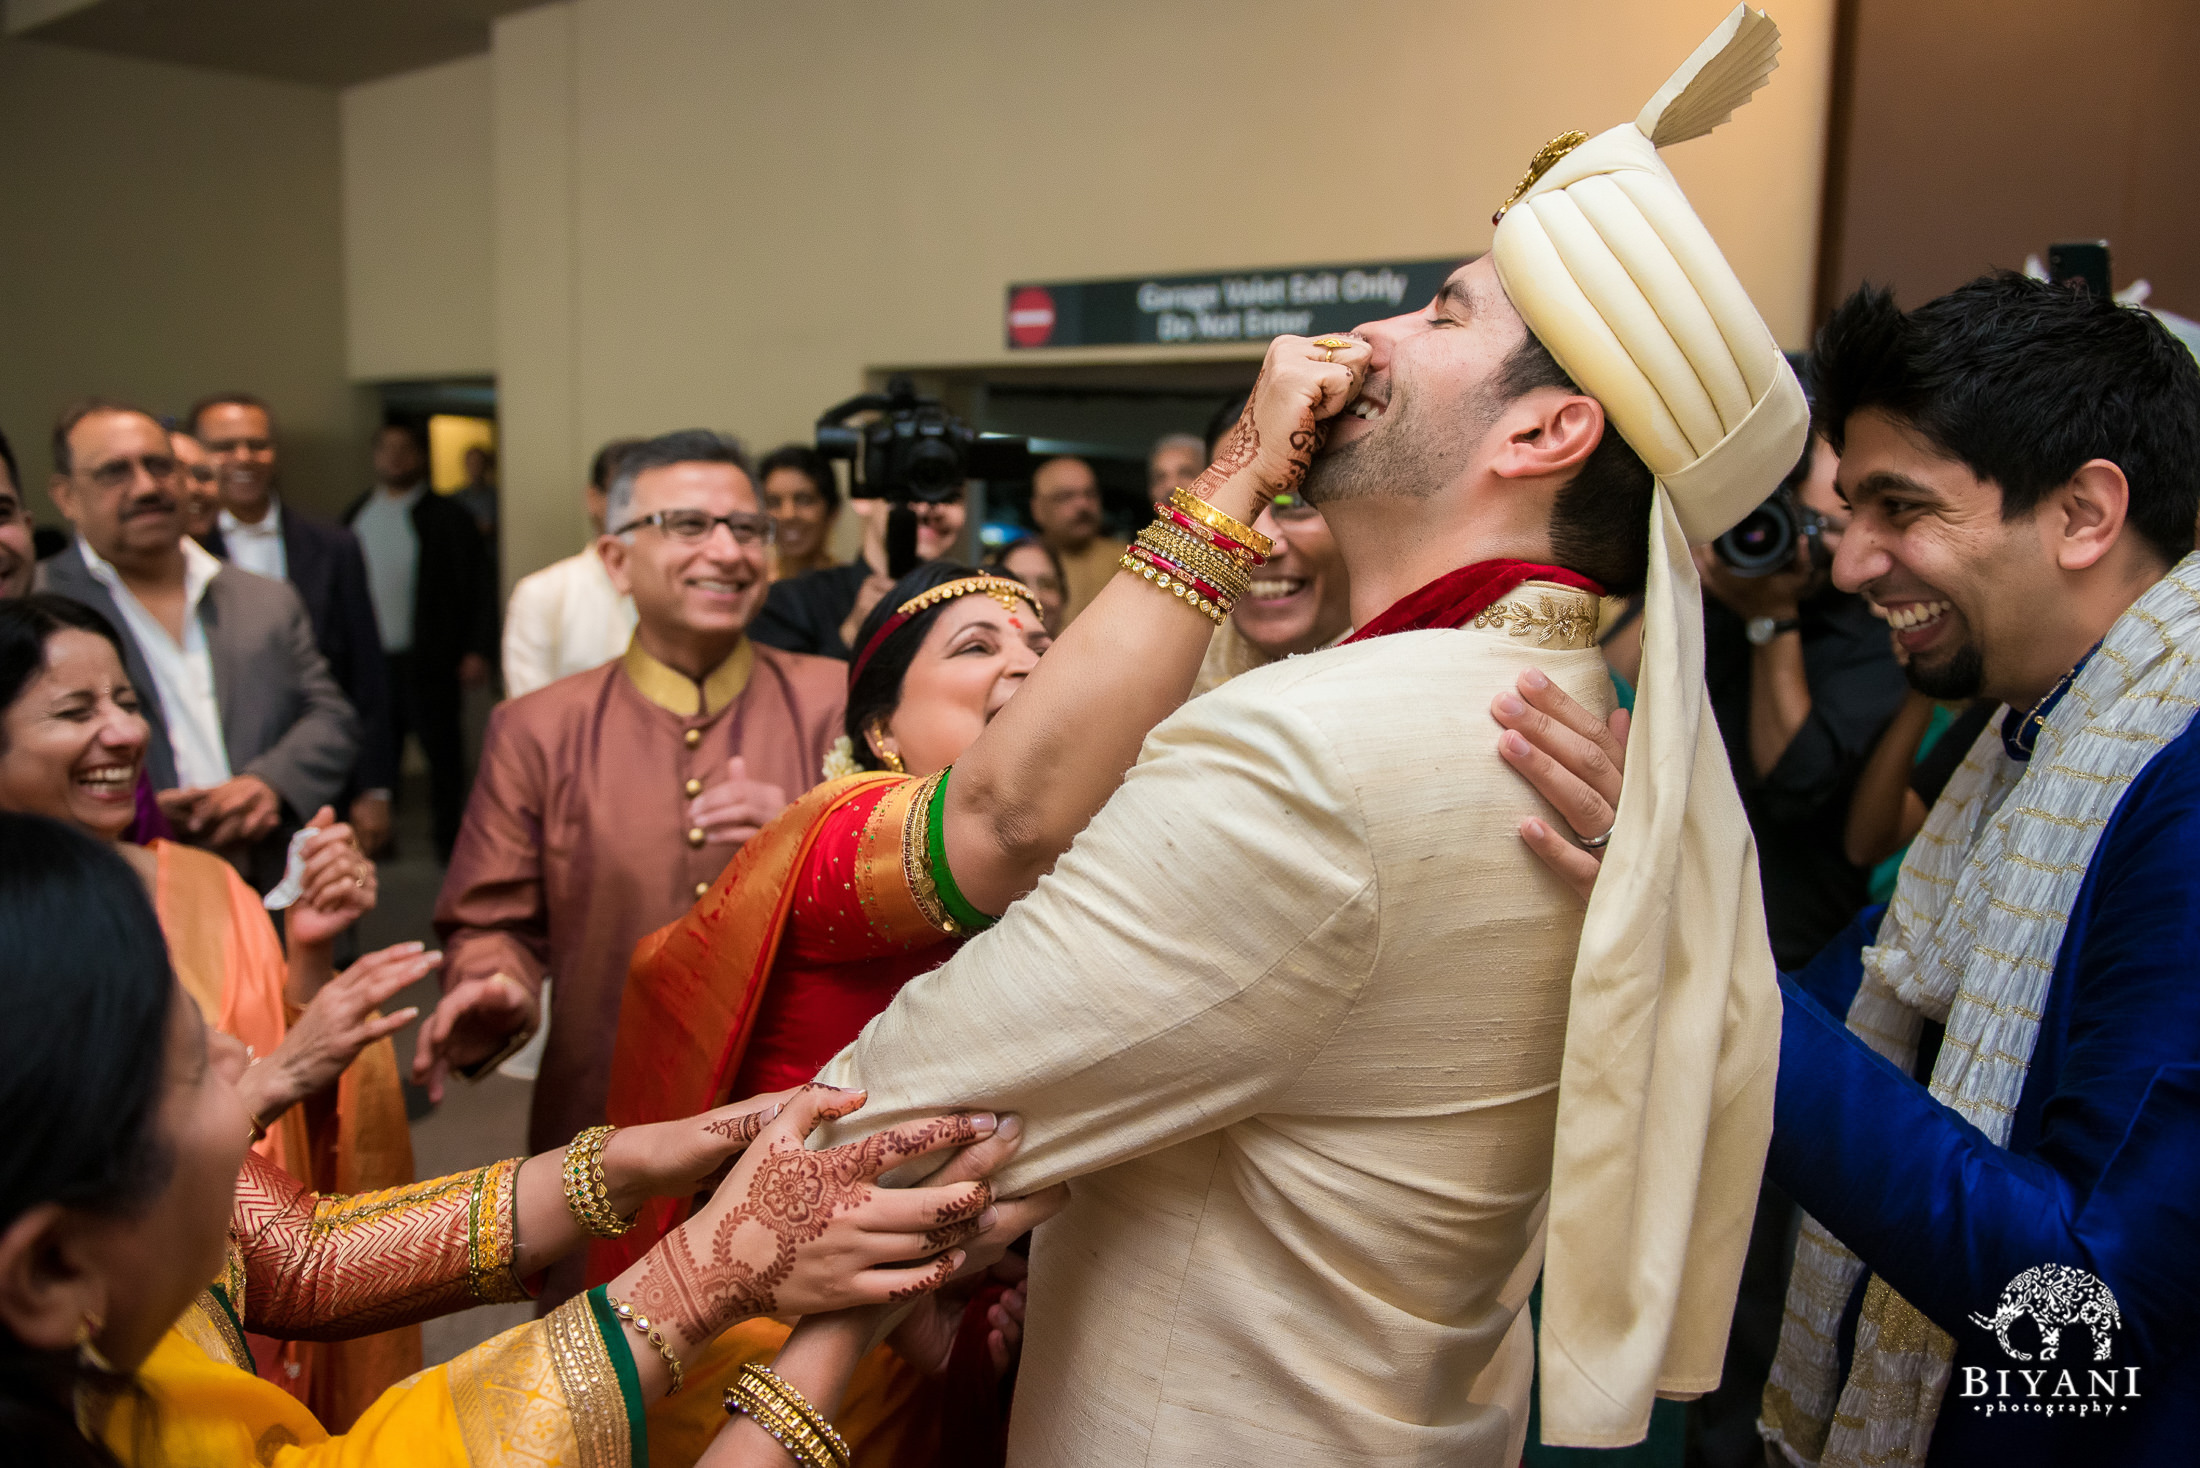 Mother in law grabs groom's nose durin baraat ceremony